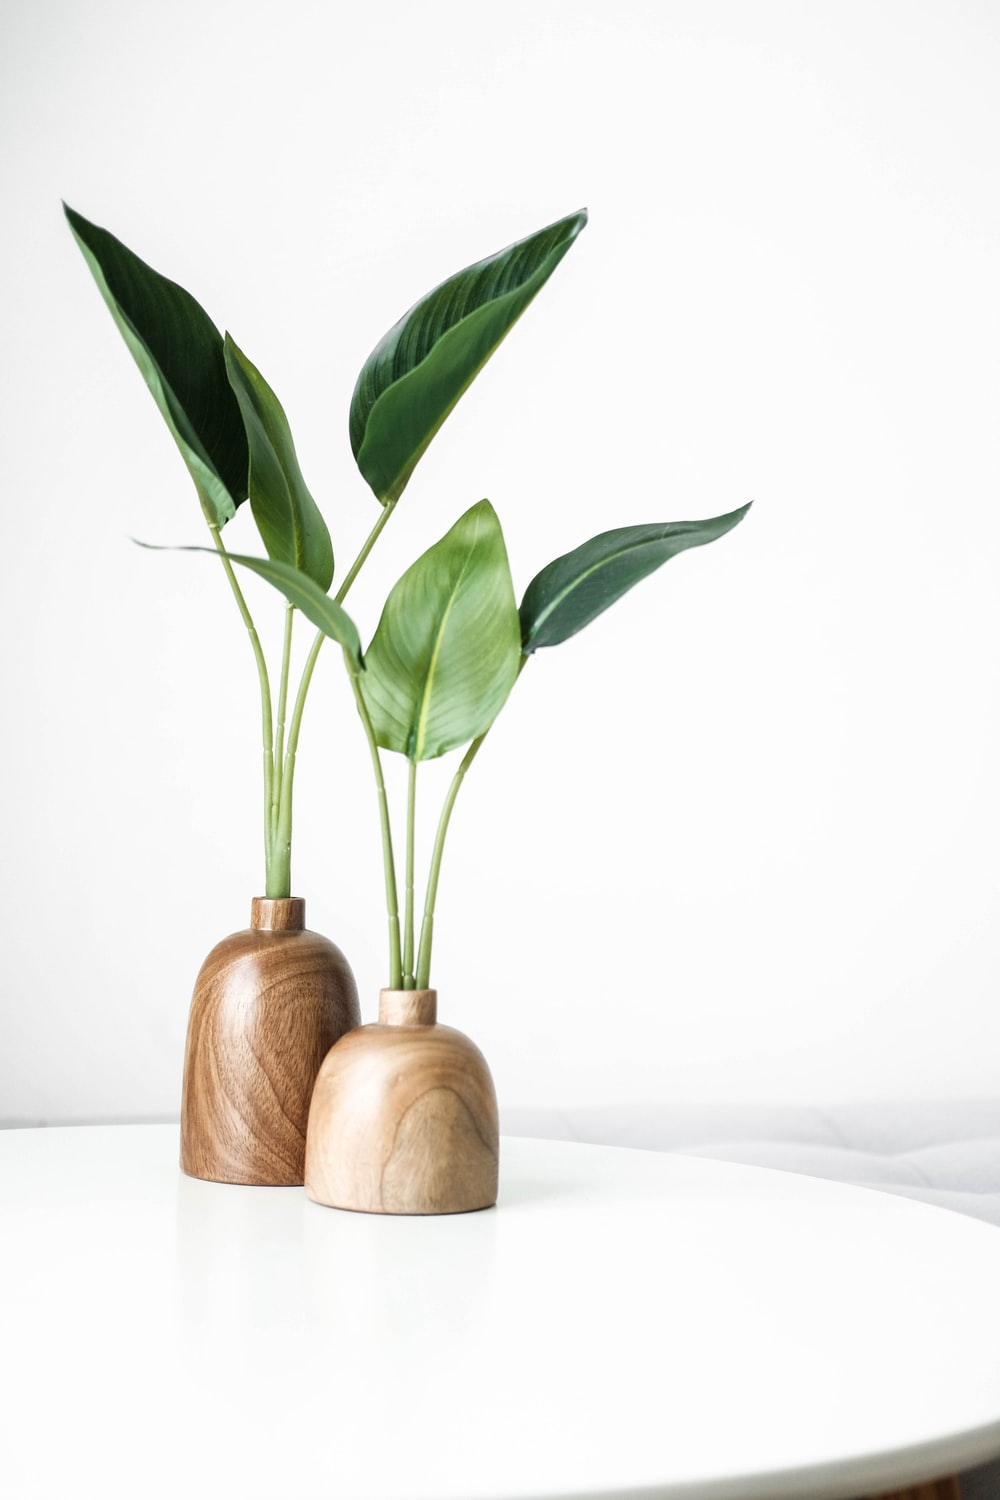 green plant on brown wooden vase